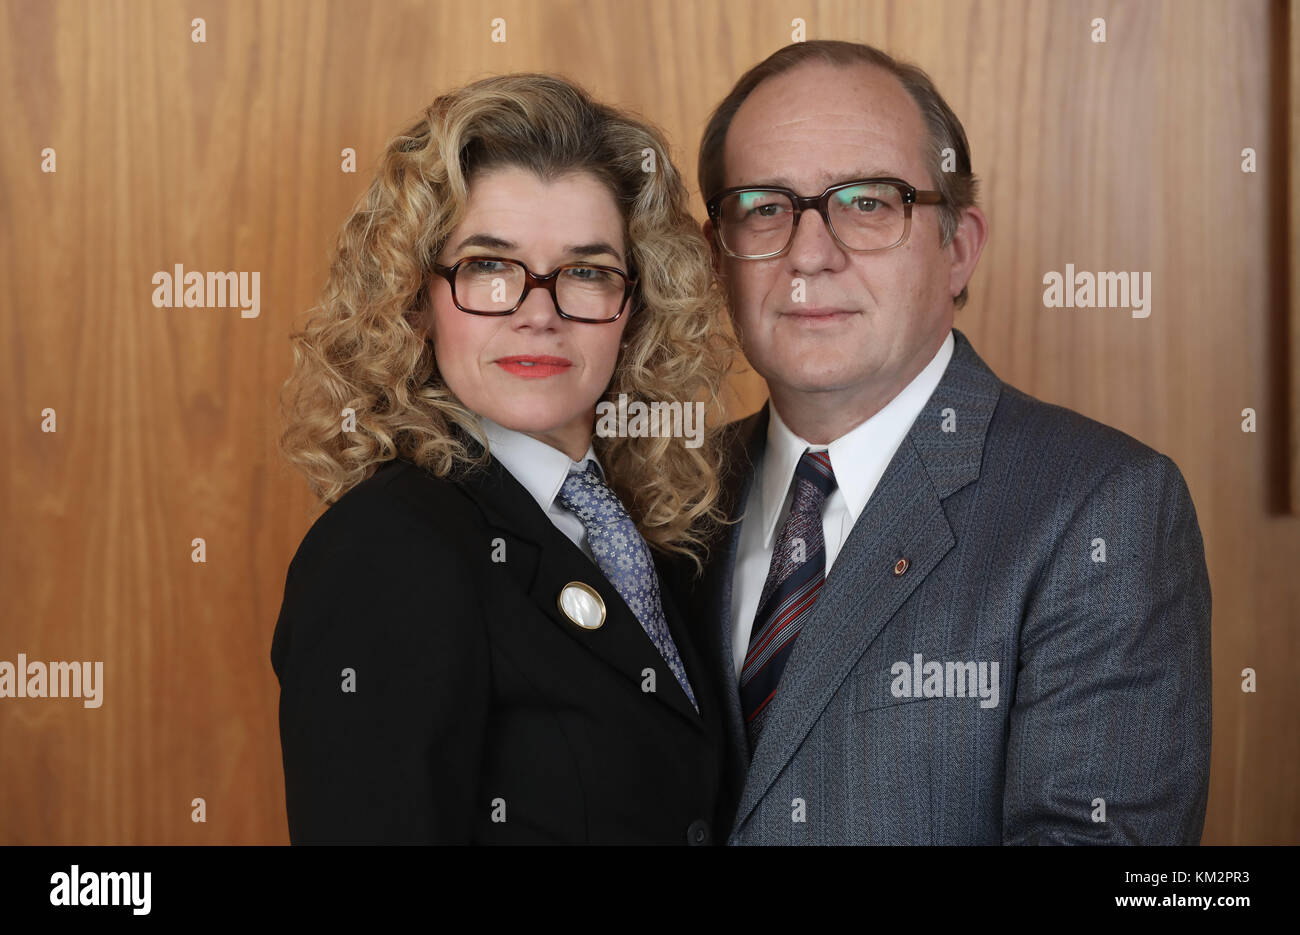 Berlin, Germany. 04th Dec, 2017. Actors Anke Engelke and Uwe Preuss during the shooting of the Amazon Prime video - Stock Image